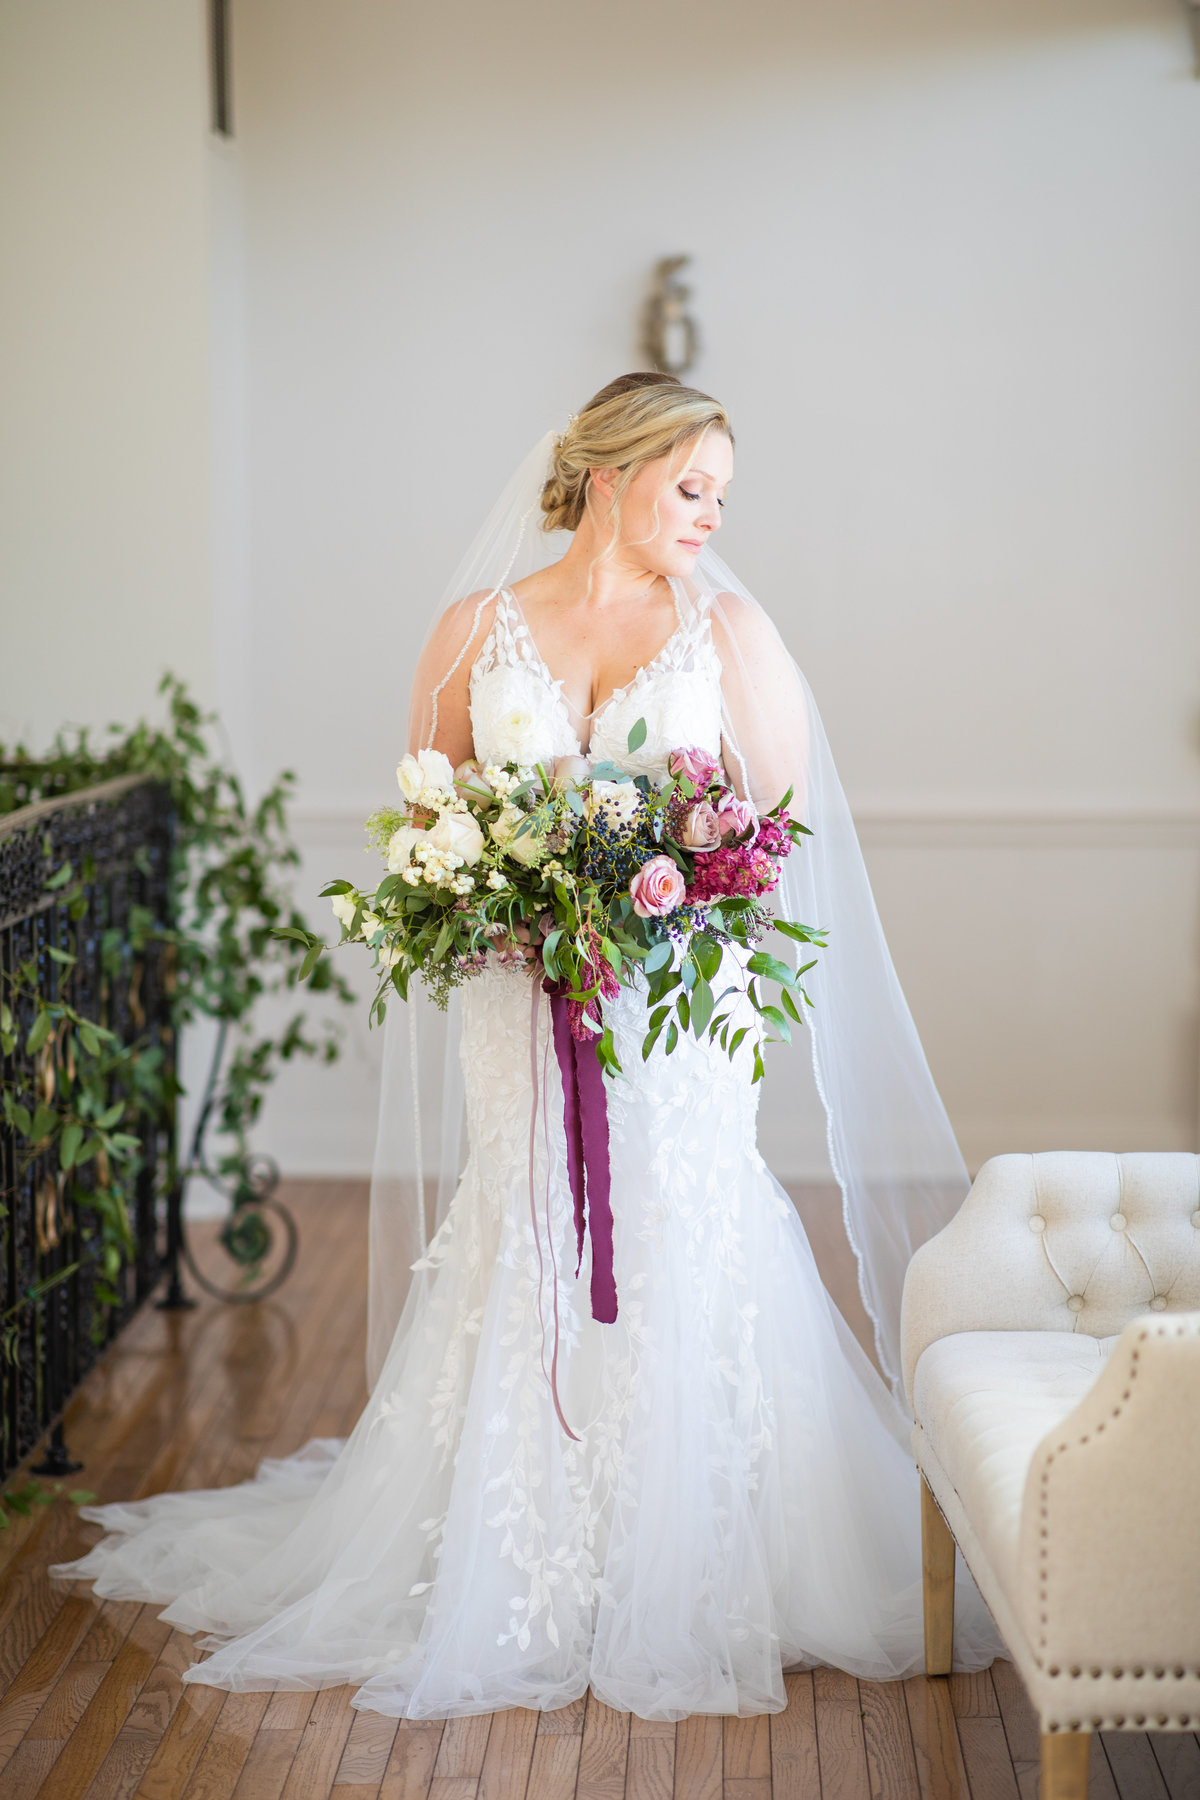 Stefanie Kamerman Photography - Sweetly Southern Events LLC Styled Shoot - The Manor at Airmont - Round Hill, VA-253